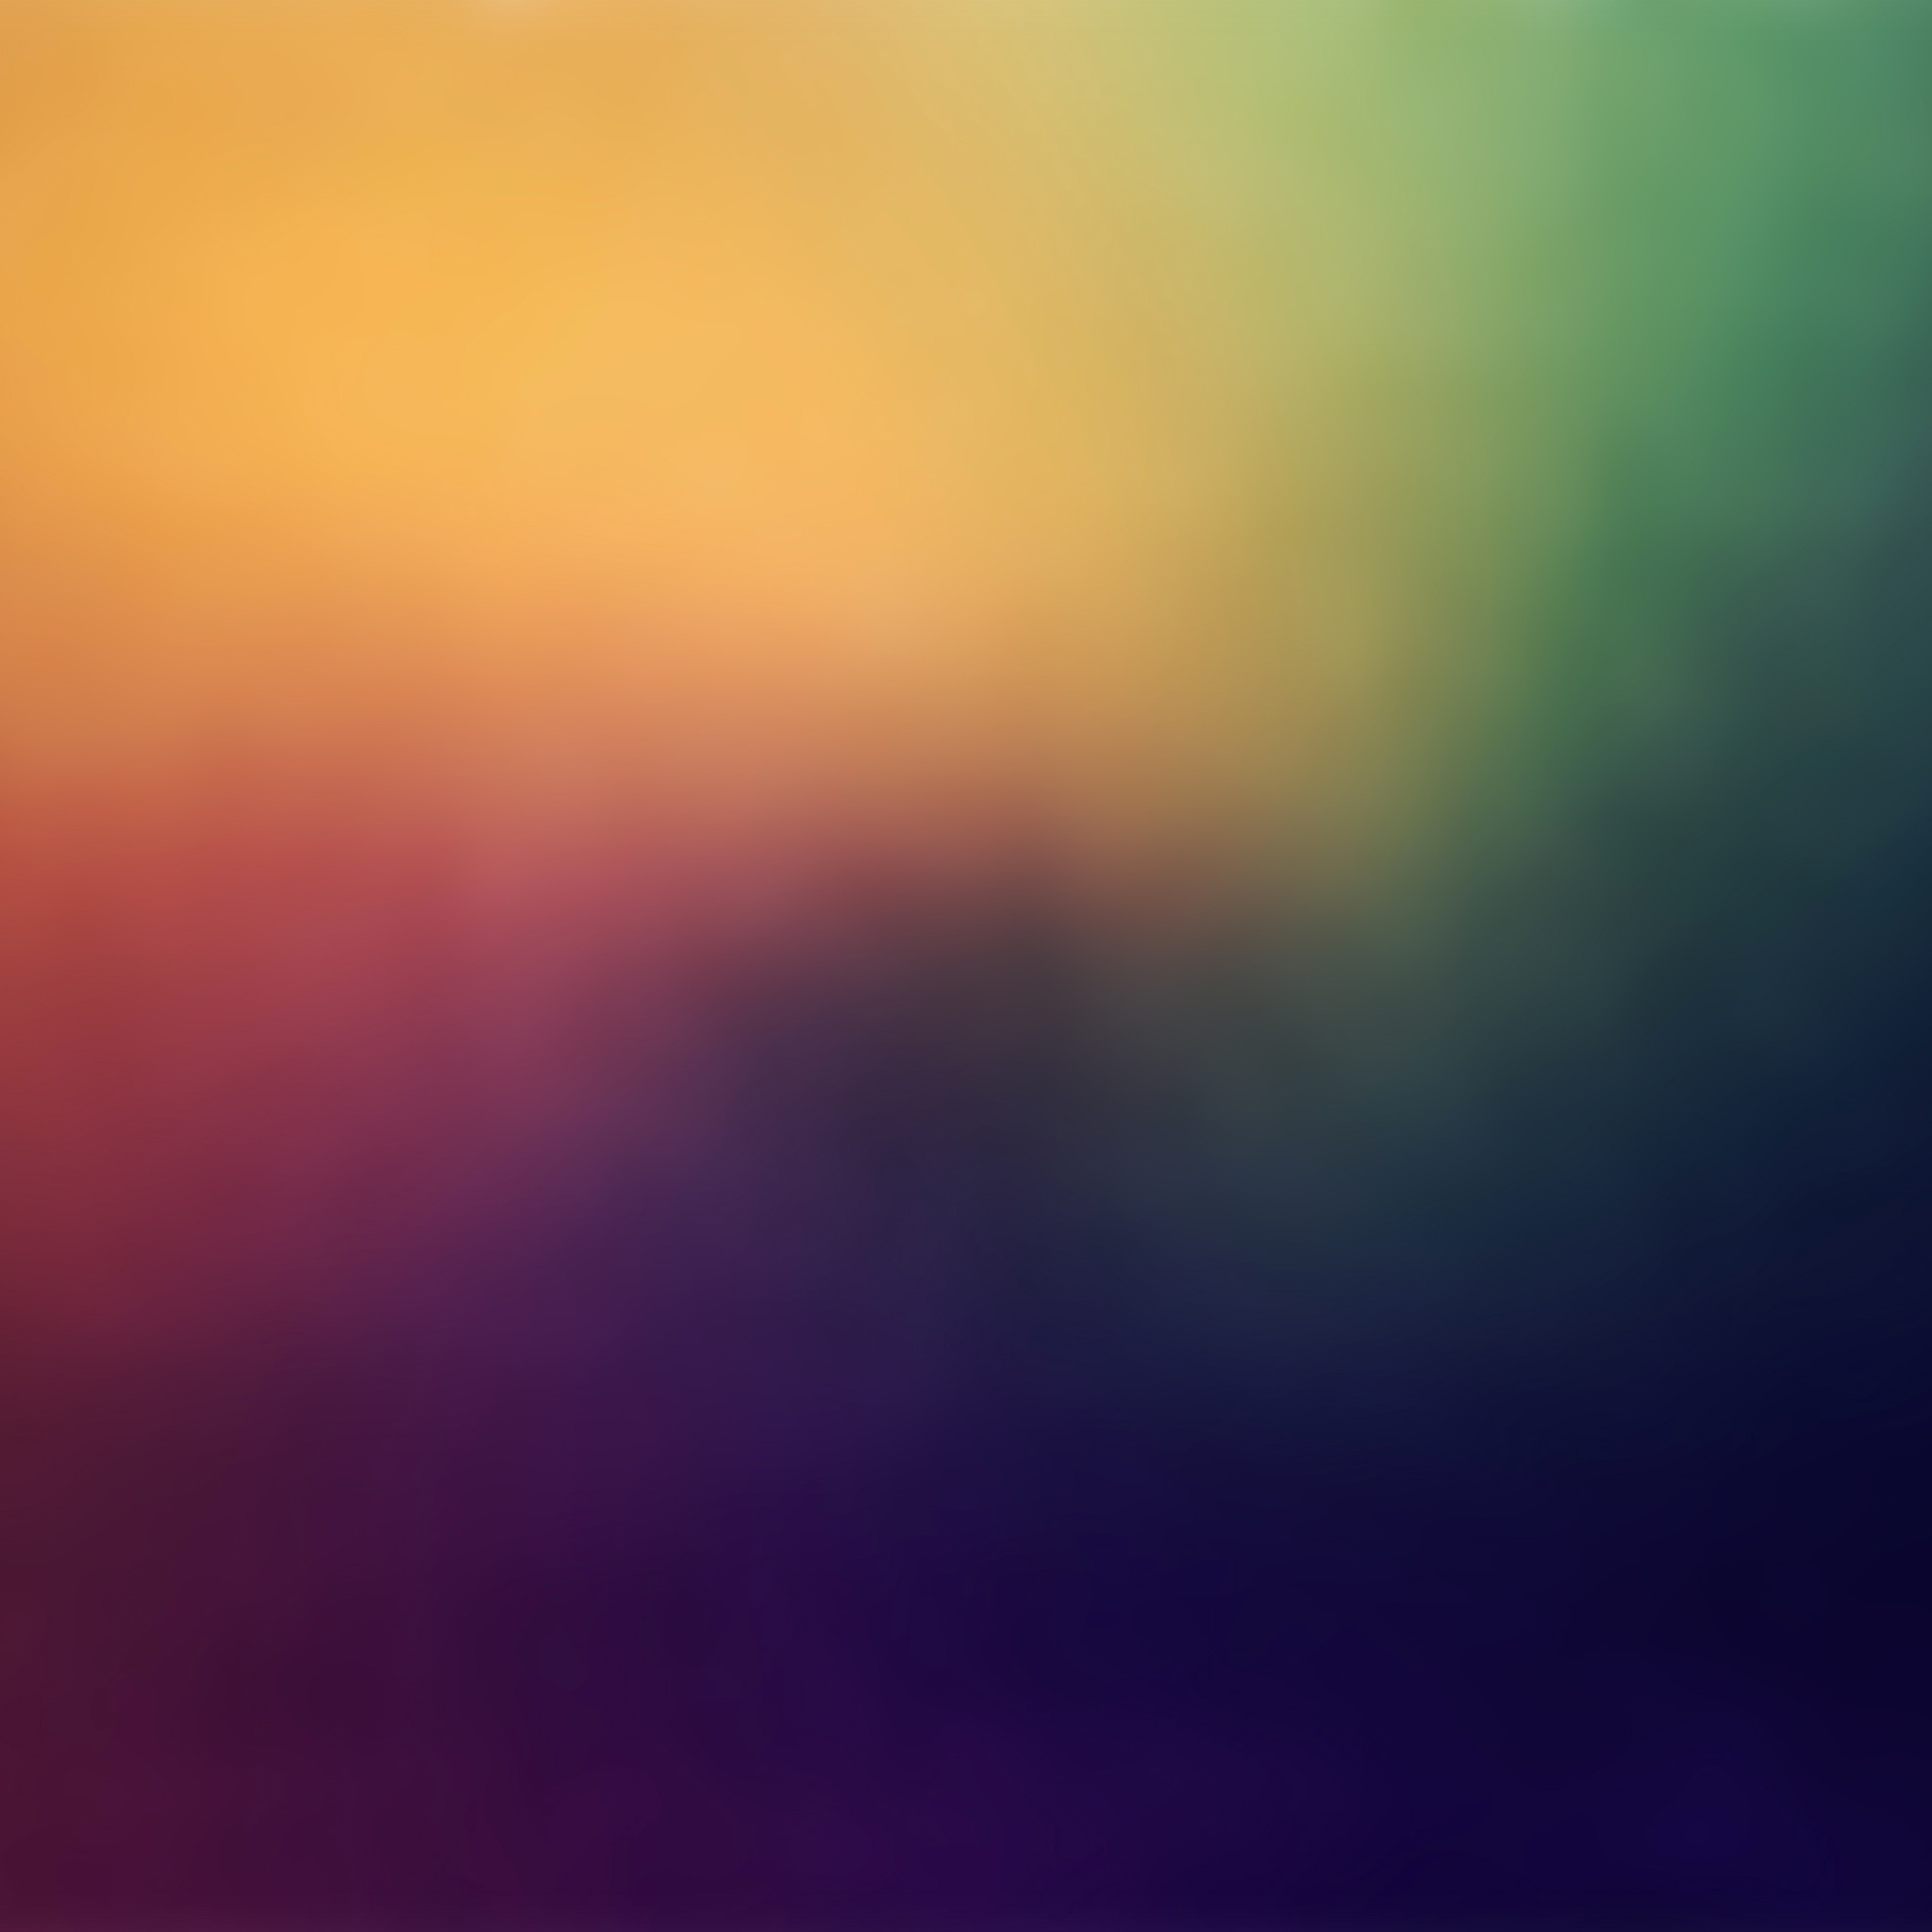 Rainbow Ipad Retina Wallpaper For Iphone 11 Pro Max X 8 7 6 Free Download On 3wallpapers